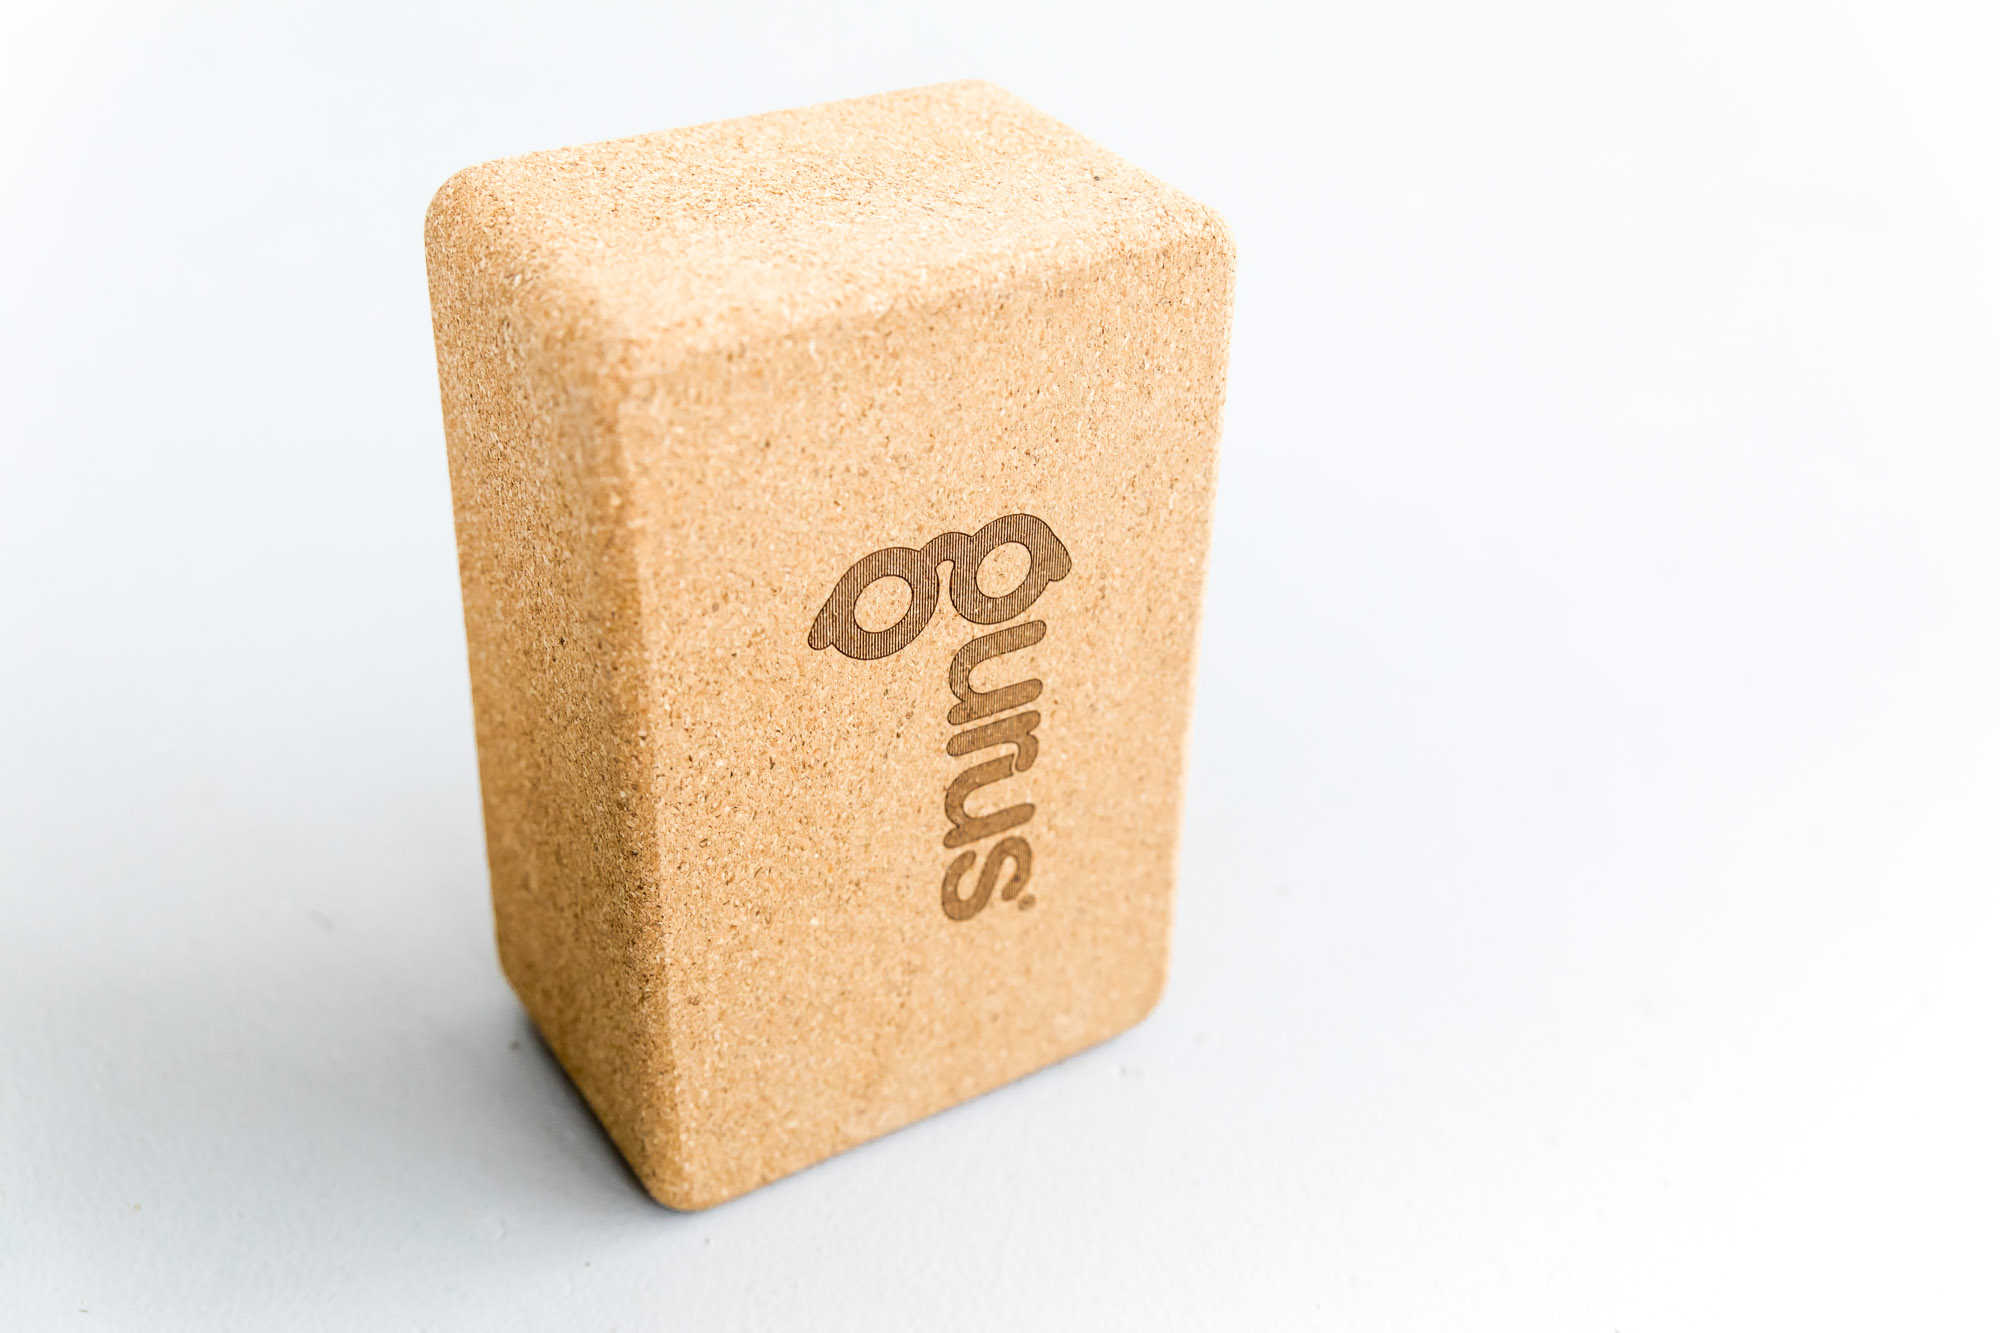 I love Gurus, Product photography, Austin product photographer, austin commercial photographer, yoga photographer, austin yoga photographer, Studio K10, yoga block